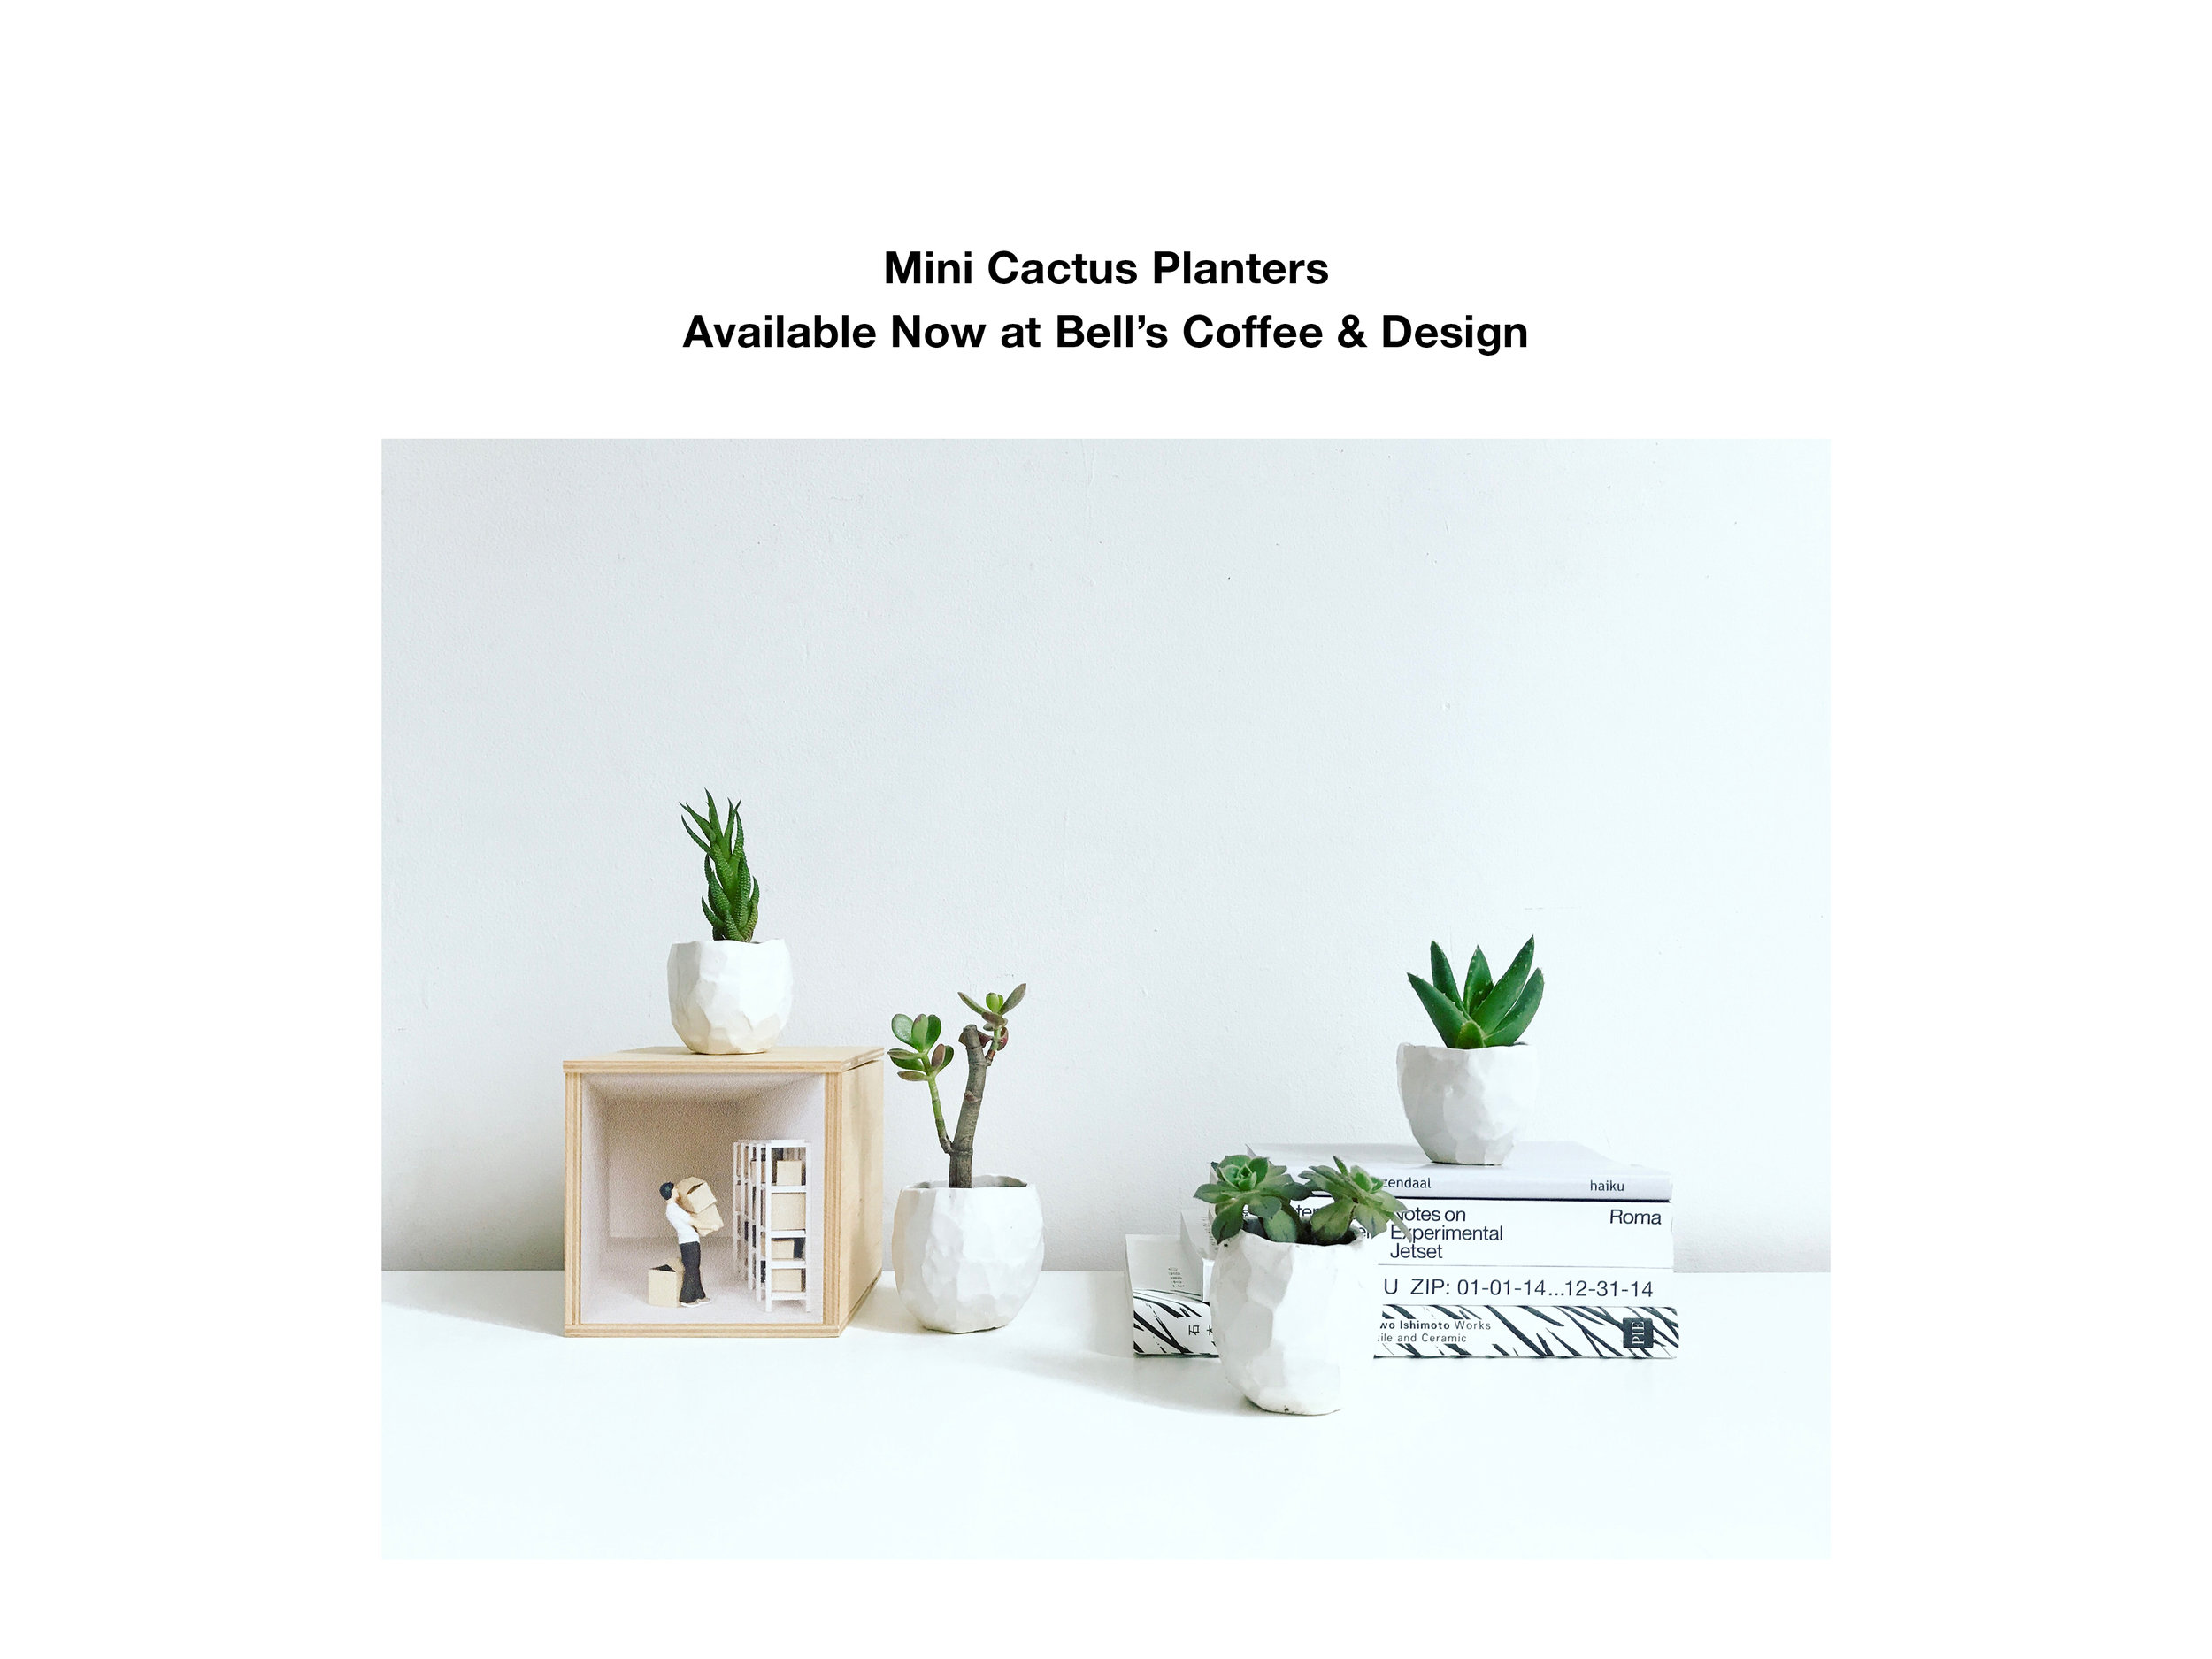 New mini cactus planters are now available at Bell's Coffee and Design in Soho NYC at 30 Grand Street.